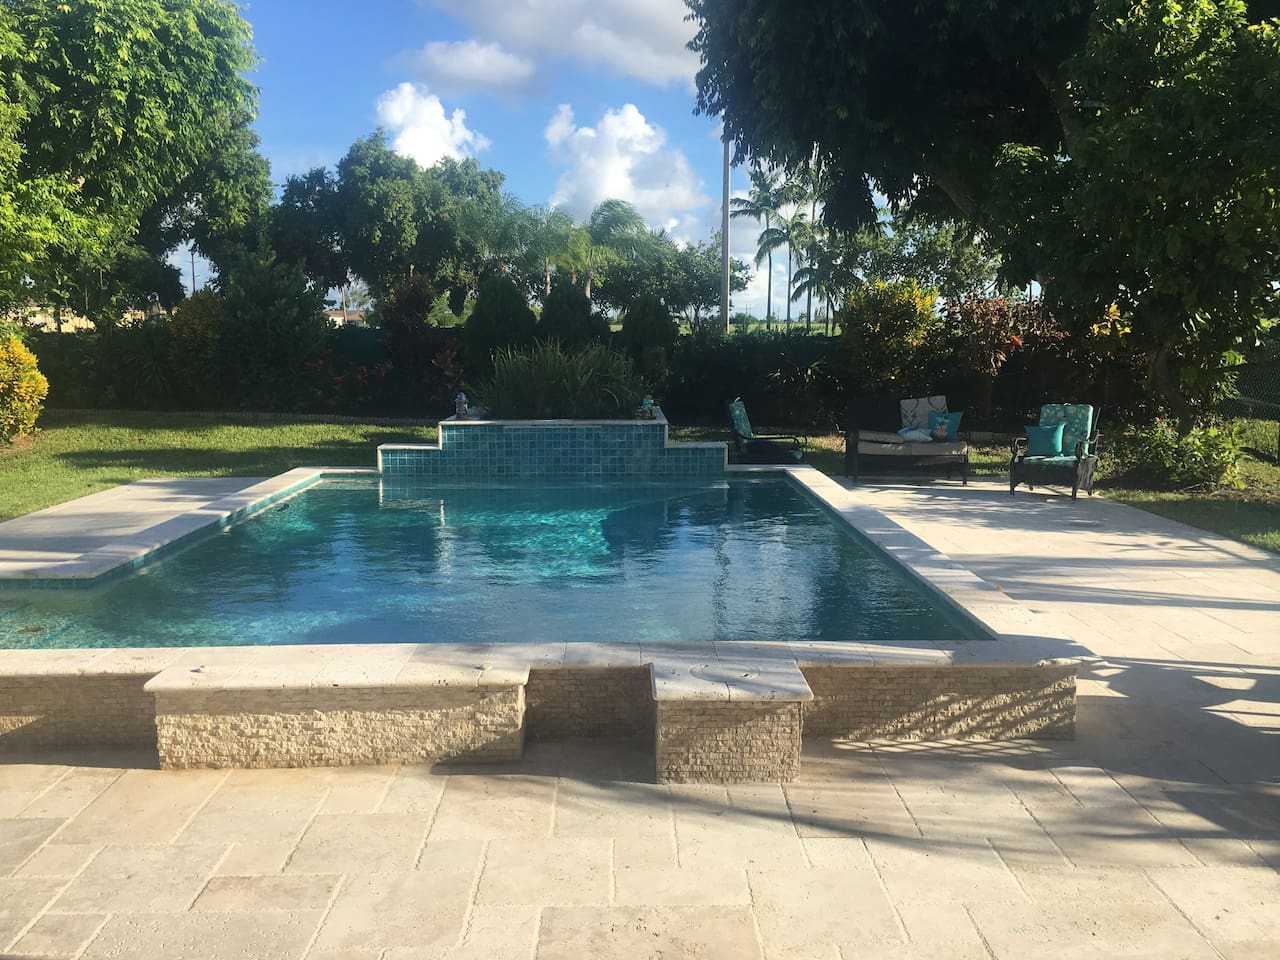 Private Pool at the back of the house